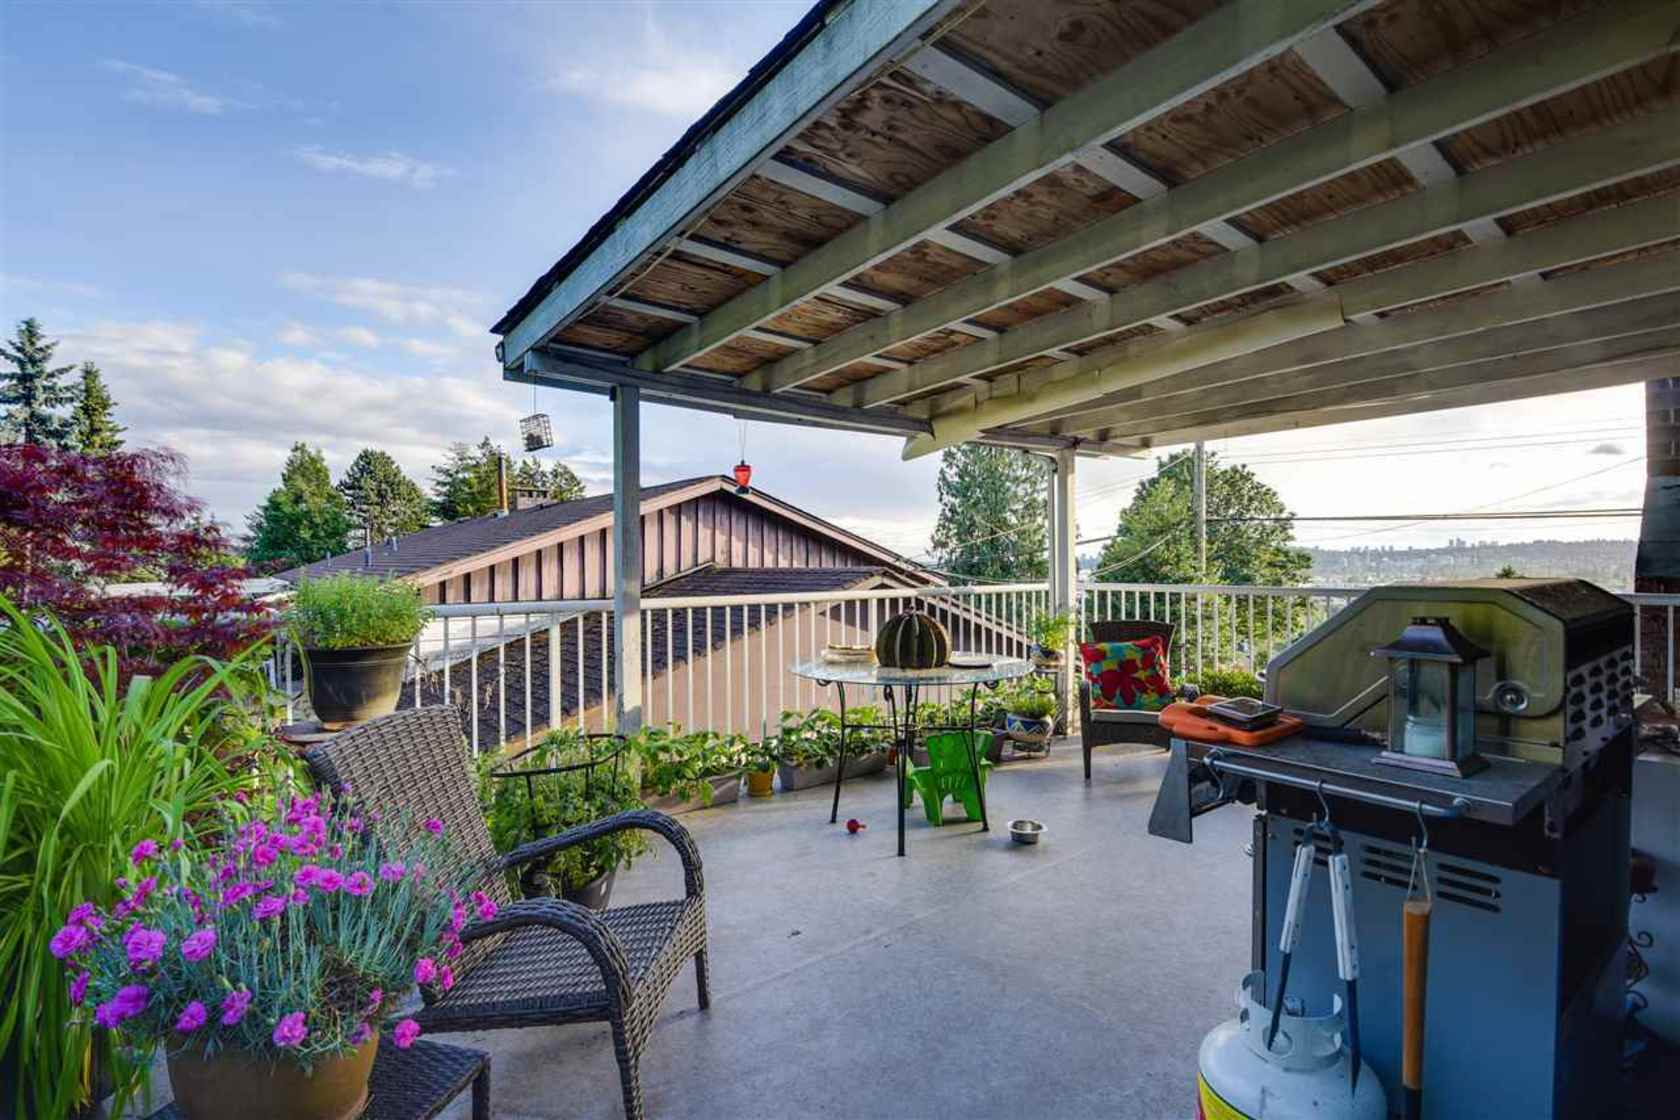 157-montgomery-street-cape-horn-coquitlam-10 at 157 Montgomery Street, Cape Horn, Coquitlam